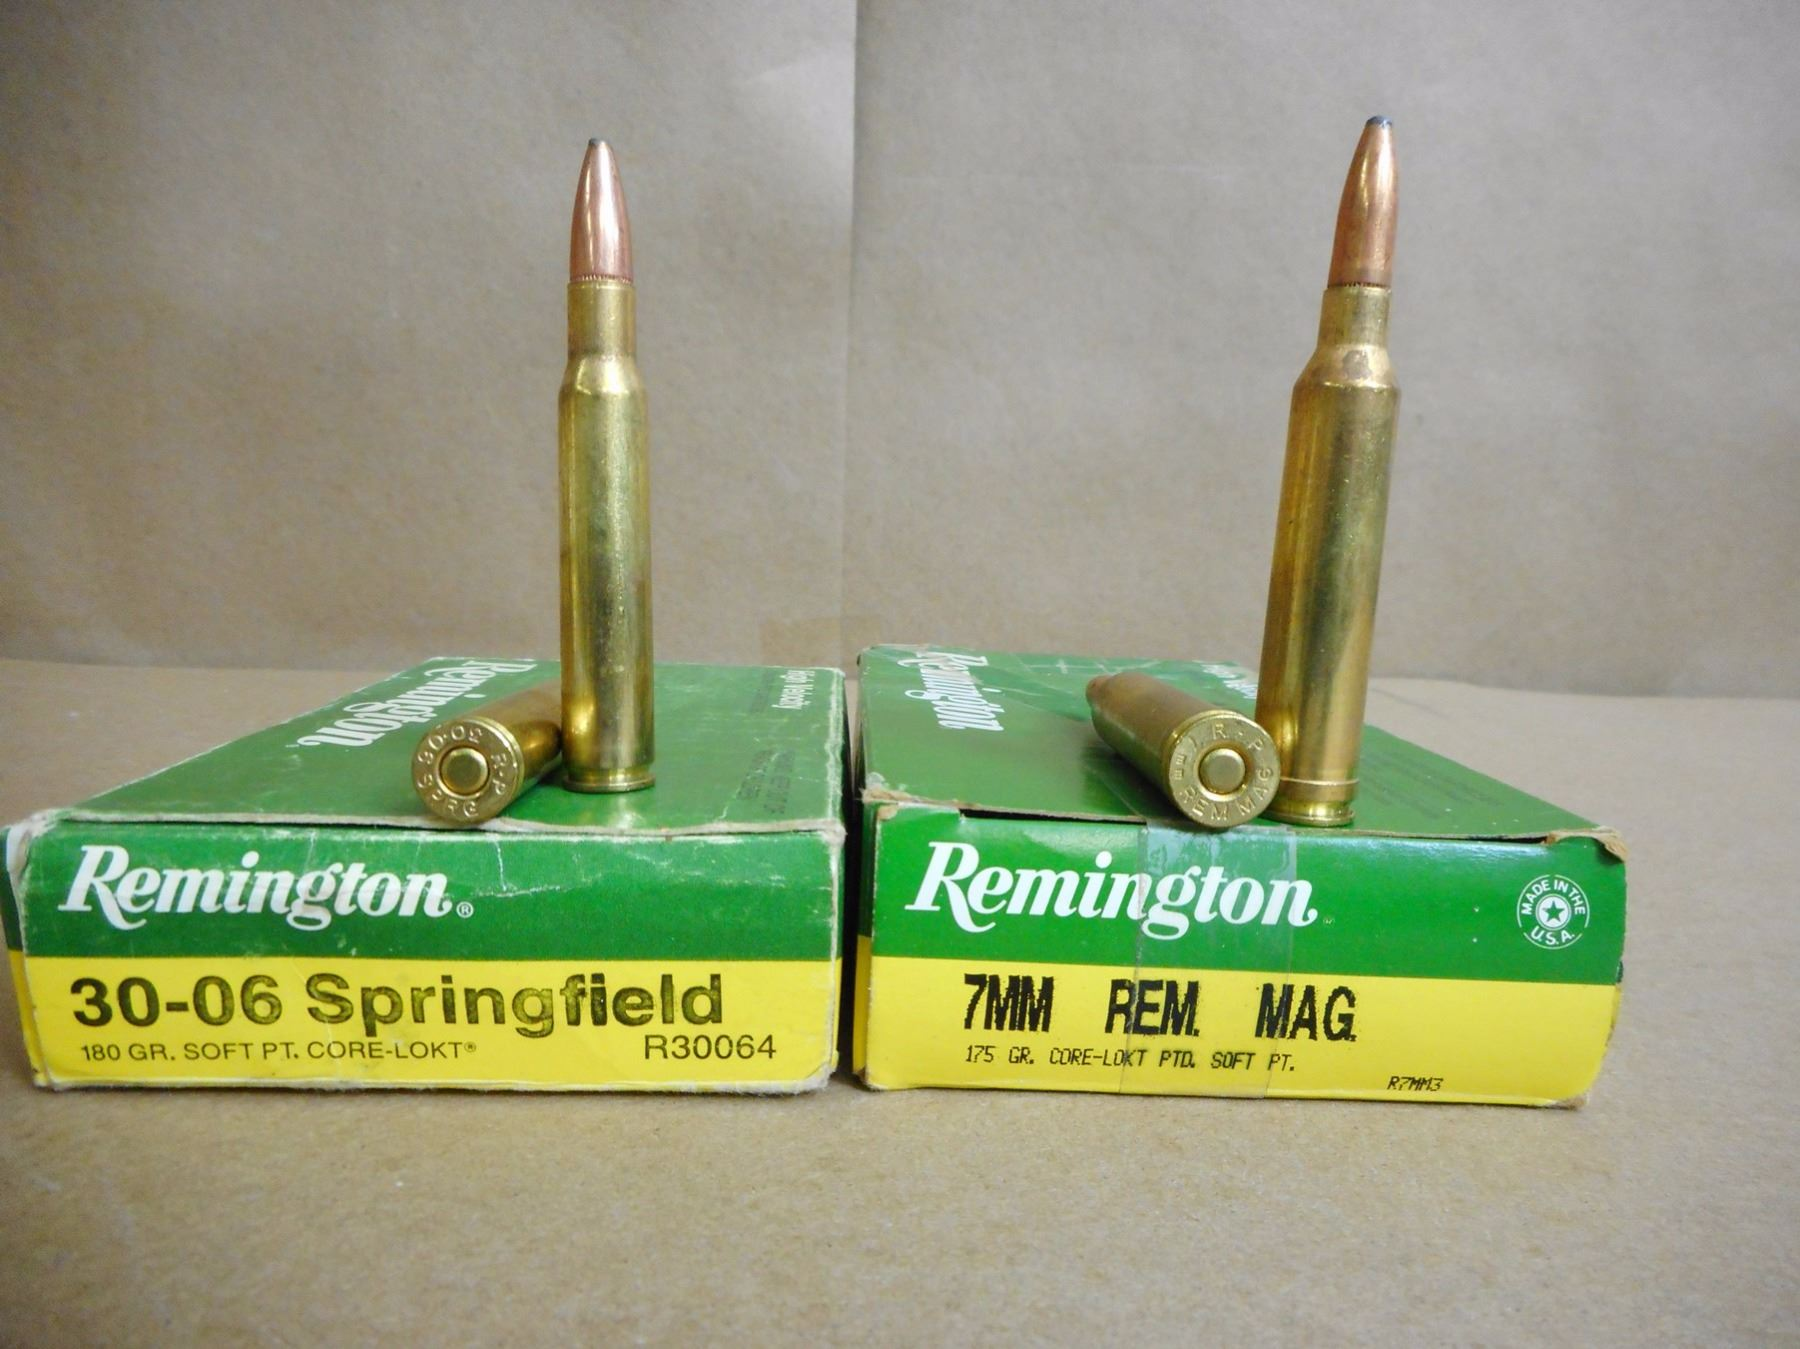 ASSORTED LOT OF AMMO INCL  7MM REM MAG, AND 30-06 SPRINGFIELD